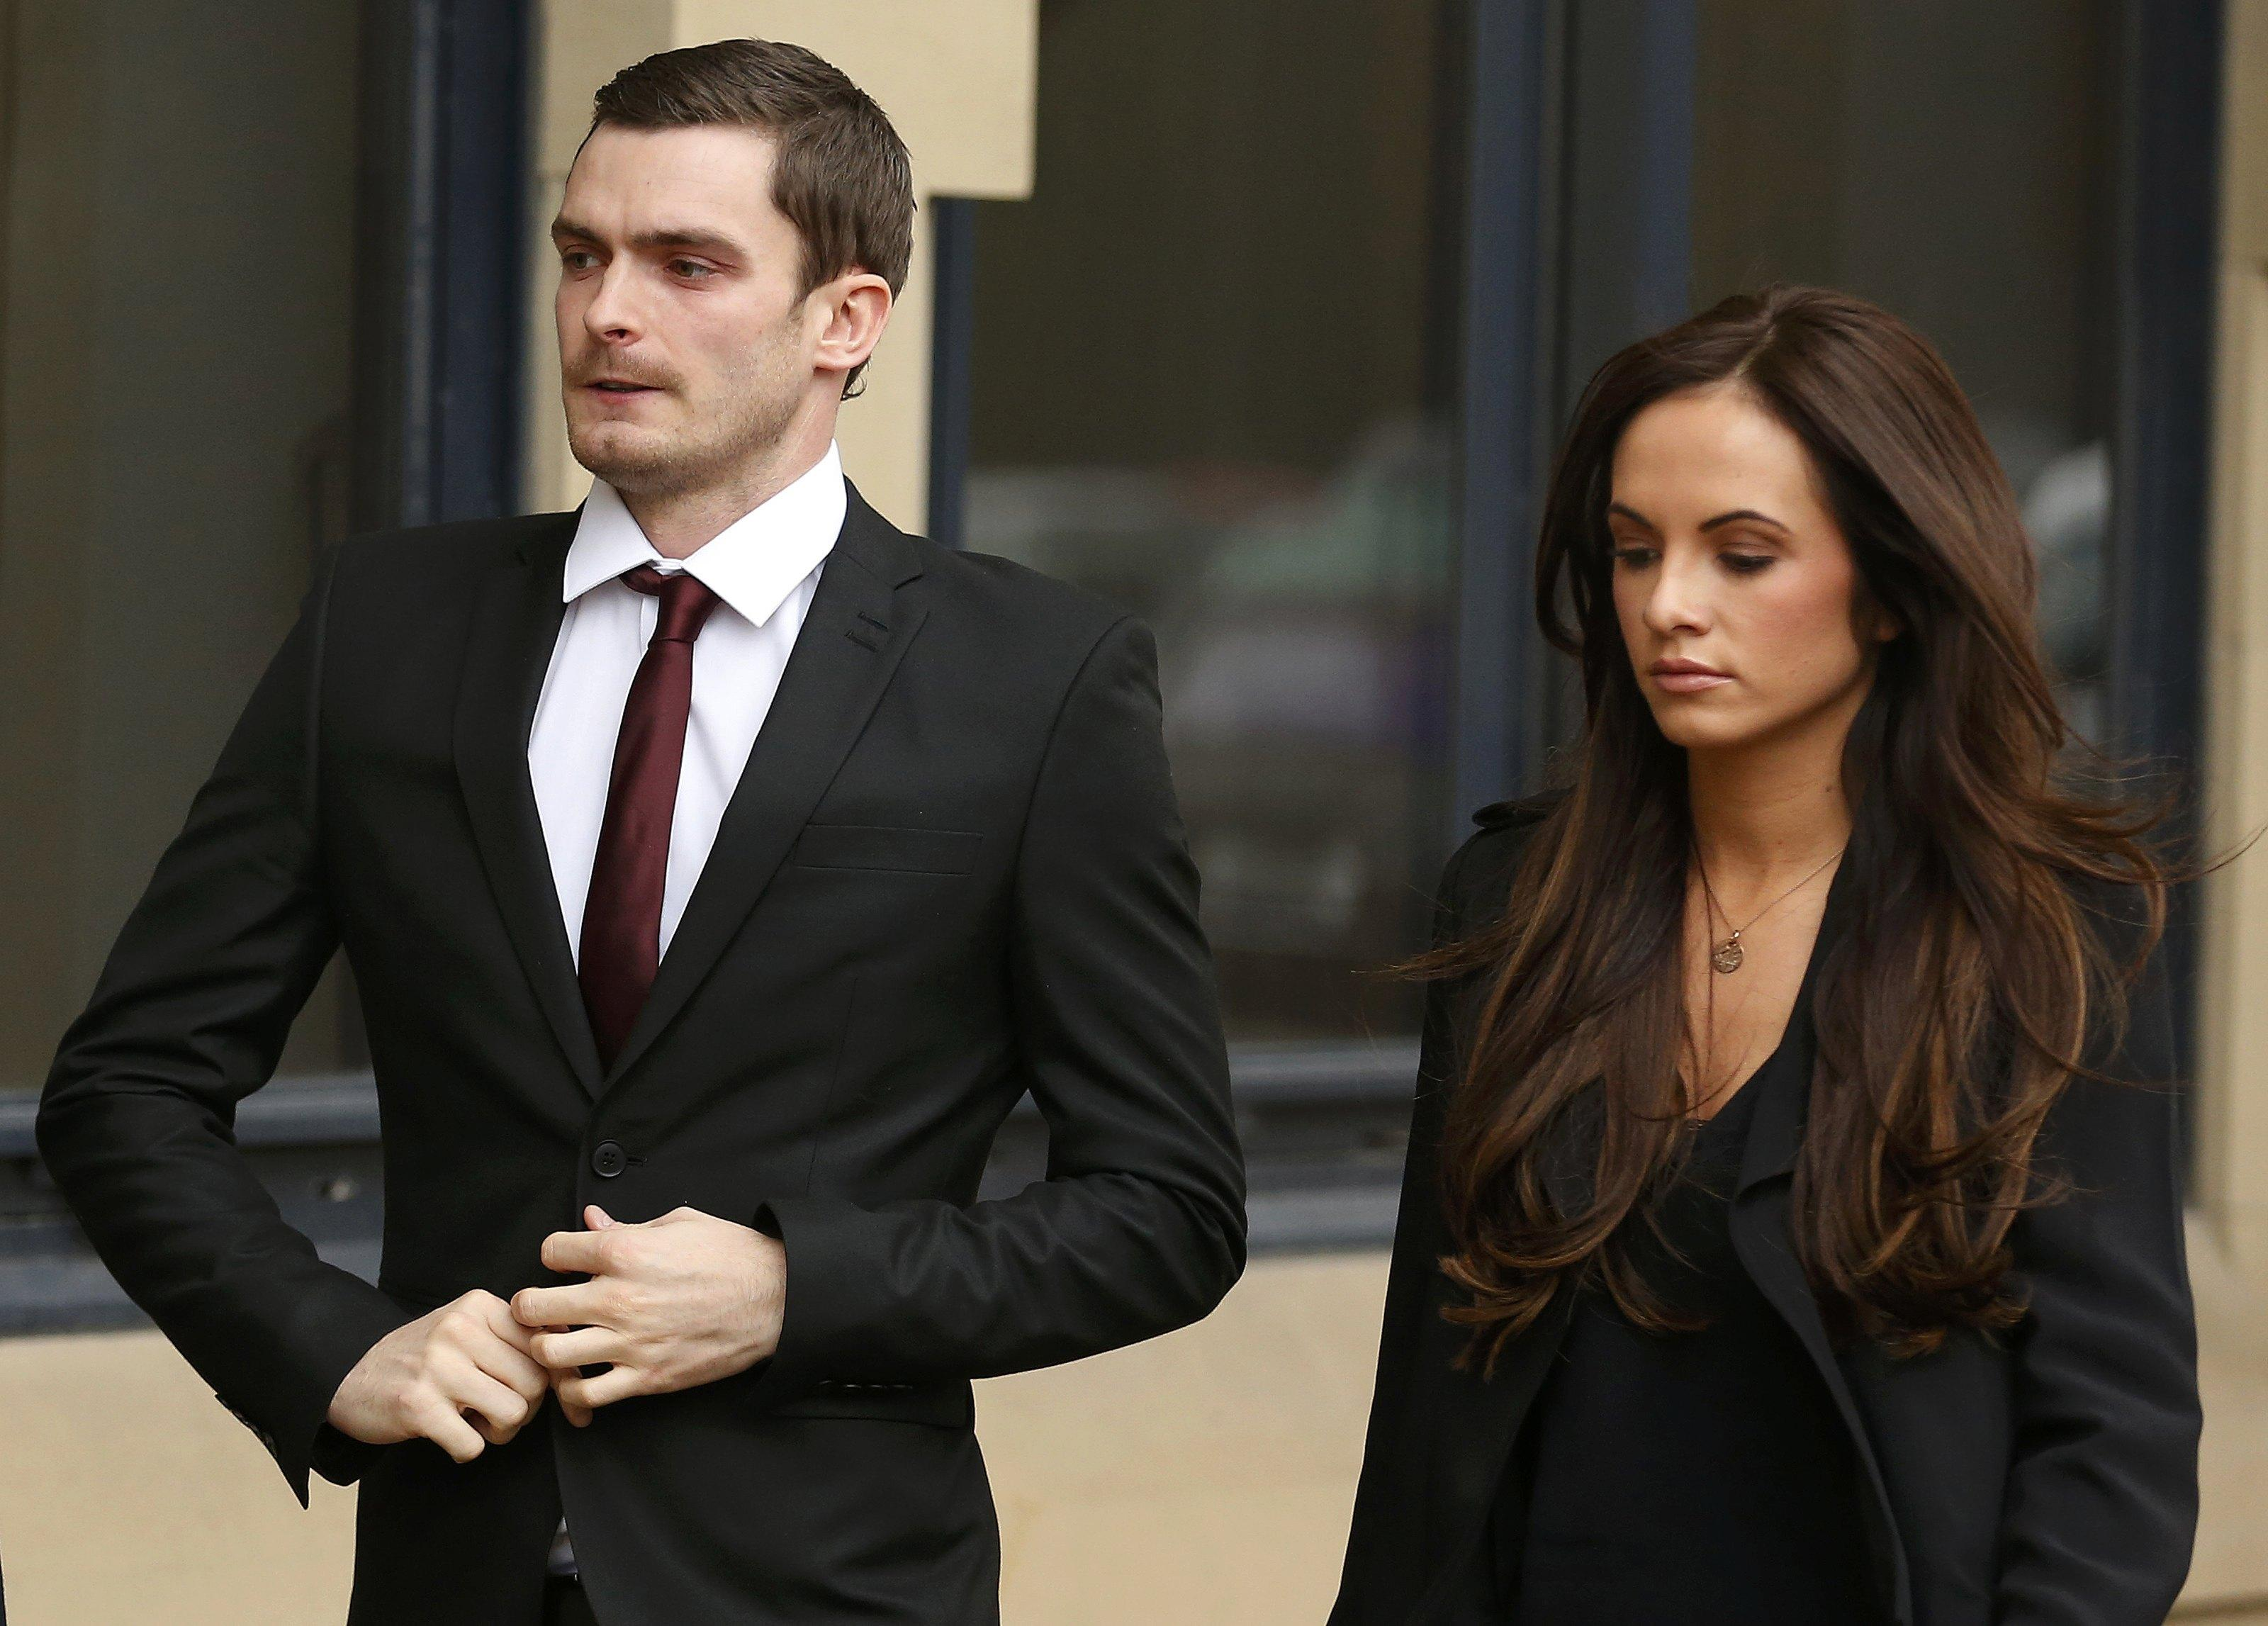 Arriving at court with his former girlfriend Stacey Flounders, Mr Johnson pleaded guilty to one count of sexual activity with a child